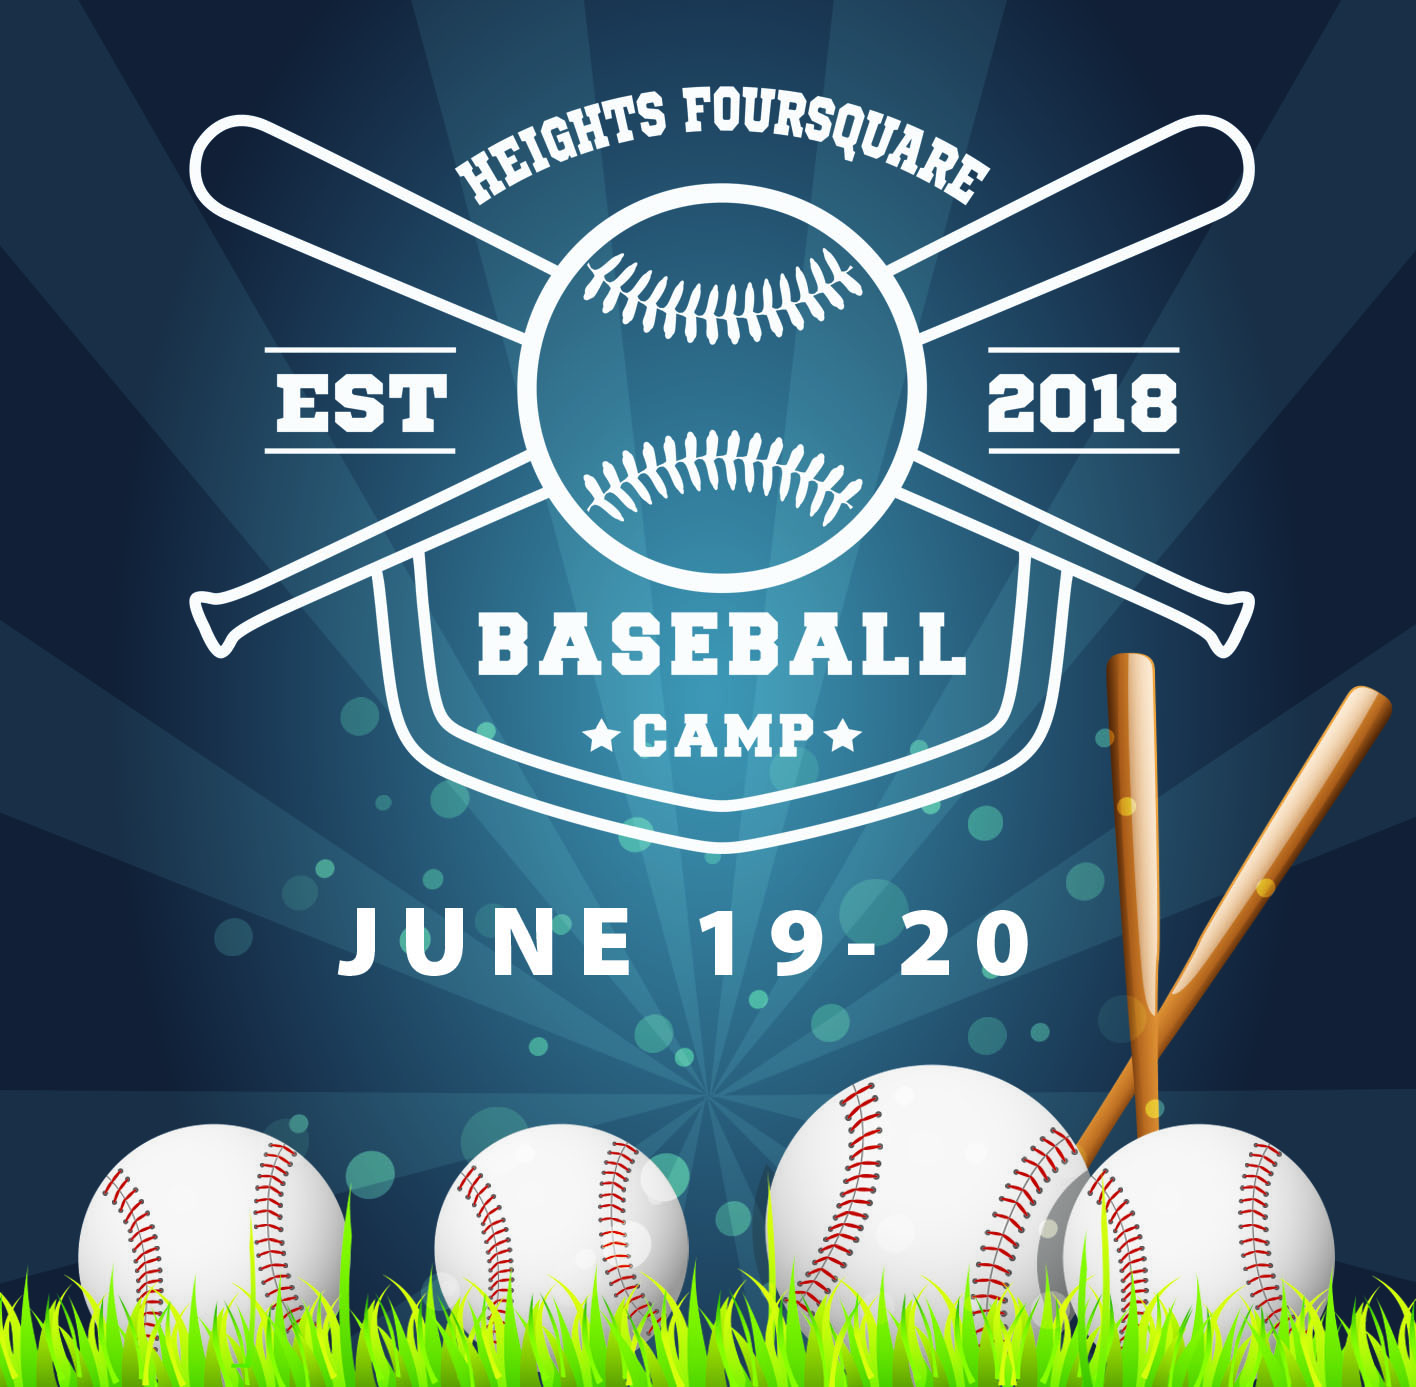 Baseball Camp - Kids ages 7-12 are invited to participate in baseball camp. They will learn to catch, hit, throw, and run bases, all while hearing about Jesus. Click here for more information and to get signed up!